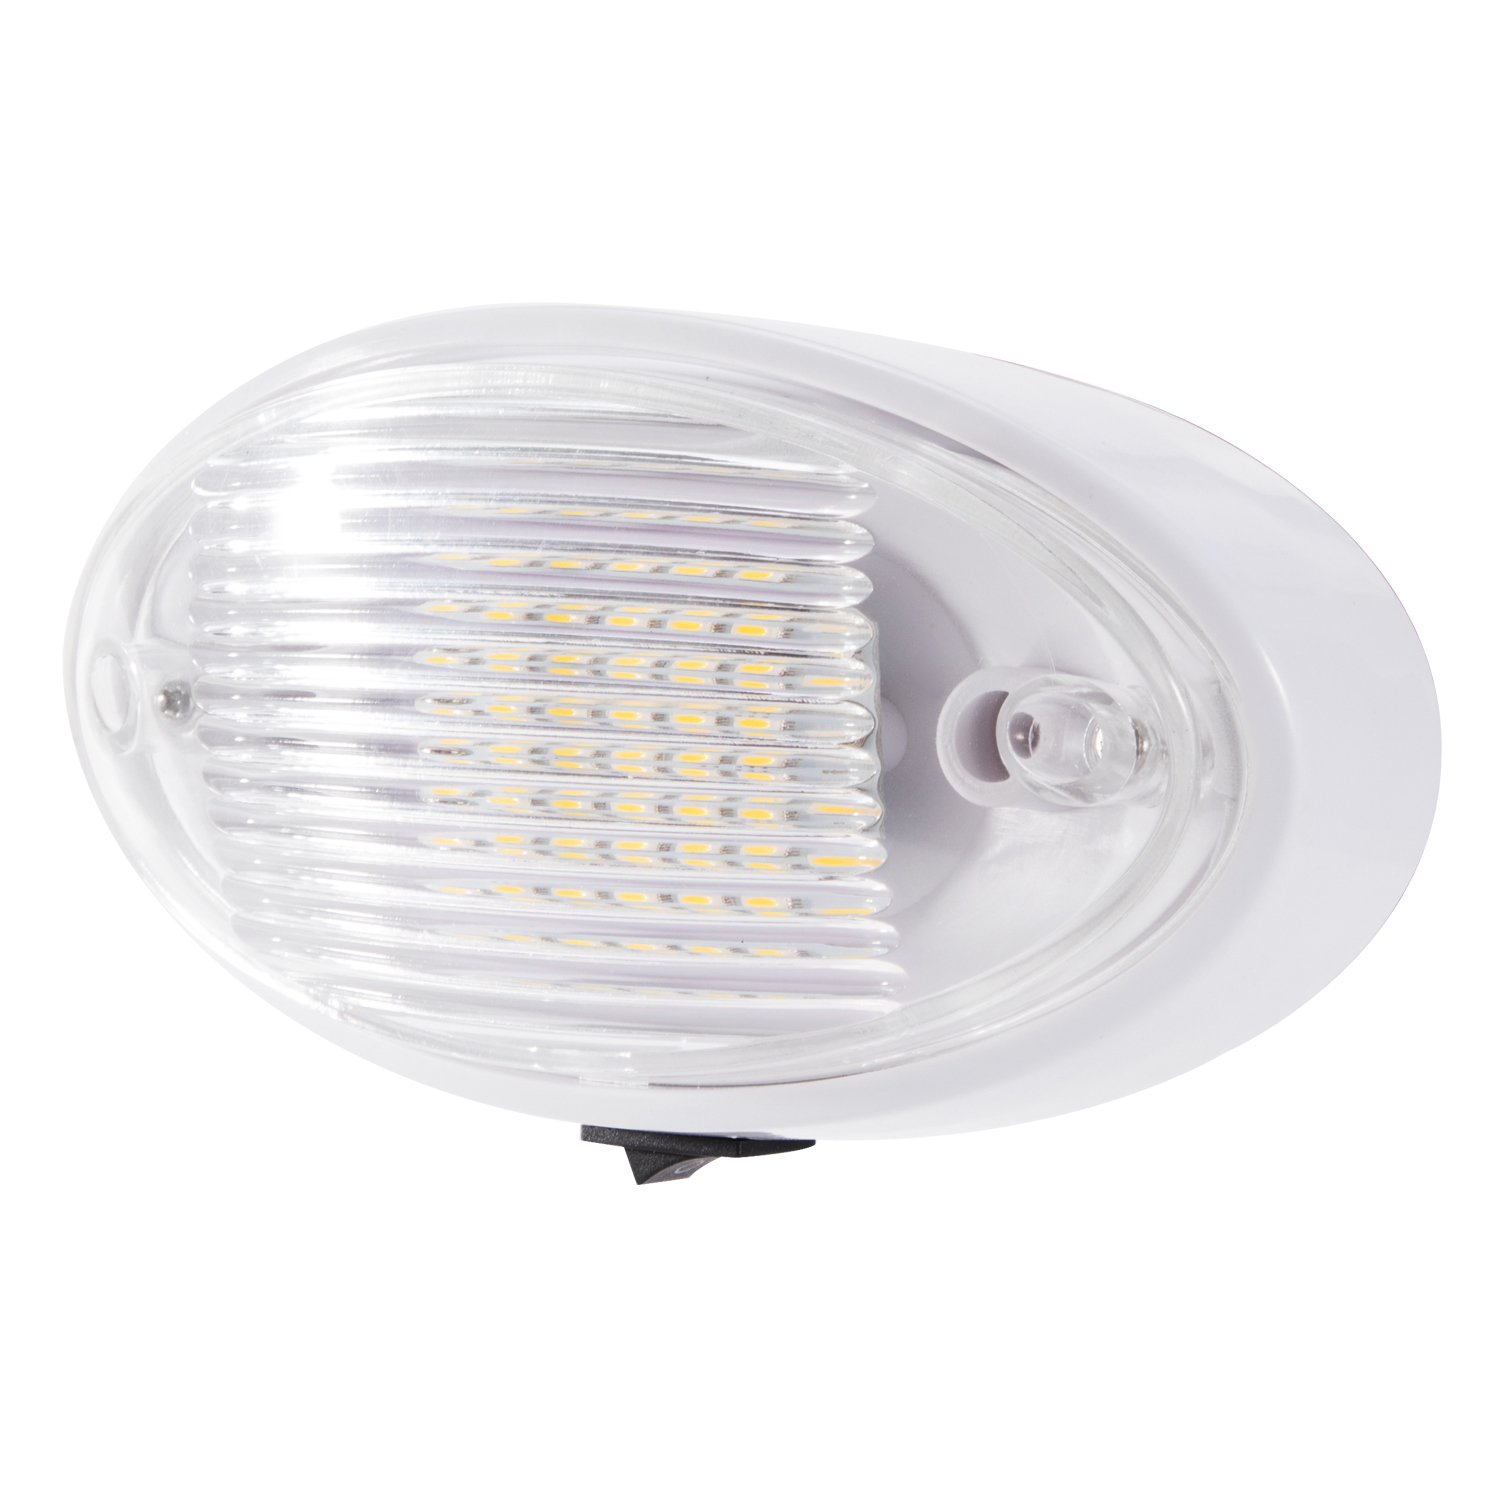 Rv 12v Light Fixtures